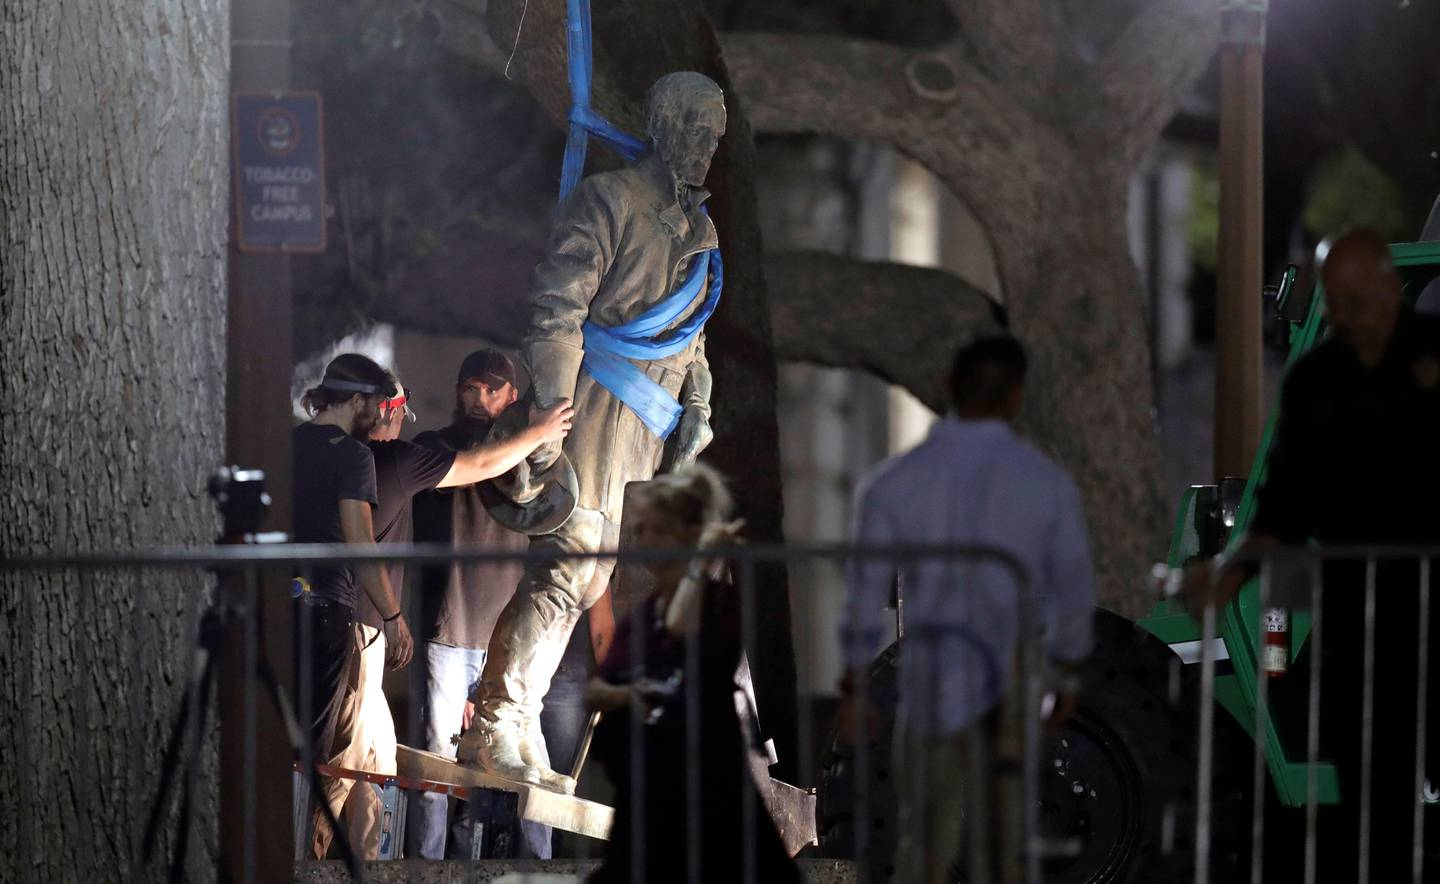 """A statue of Confederate Gen. Robert E. Lee is removed from the University of Texas campus, early Monday morning, Aug. 21, 2017, in Austin, Texas. University of Texas President Greg Fenves ordered the immediate removal of statues of Robert E. Lee and other prominent Confederate figures from a main area of campus, saying such monuments have become """"symbols of modern white supremacy and neo-Nazism."""" (AP Photo/Eric Gay)"""